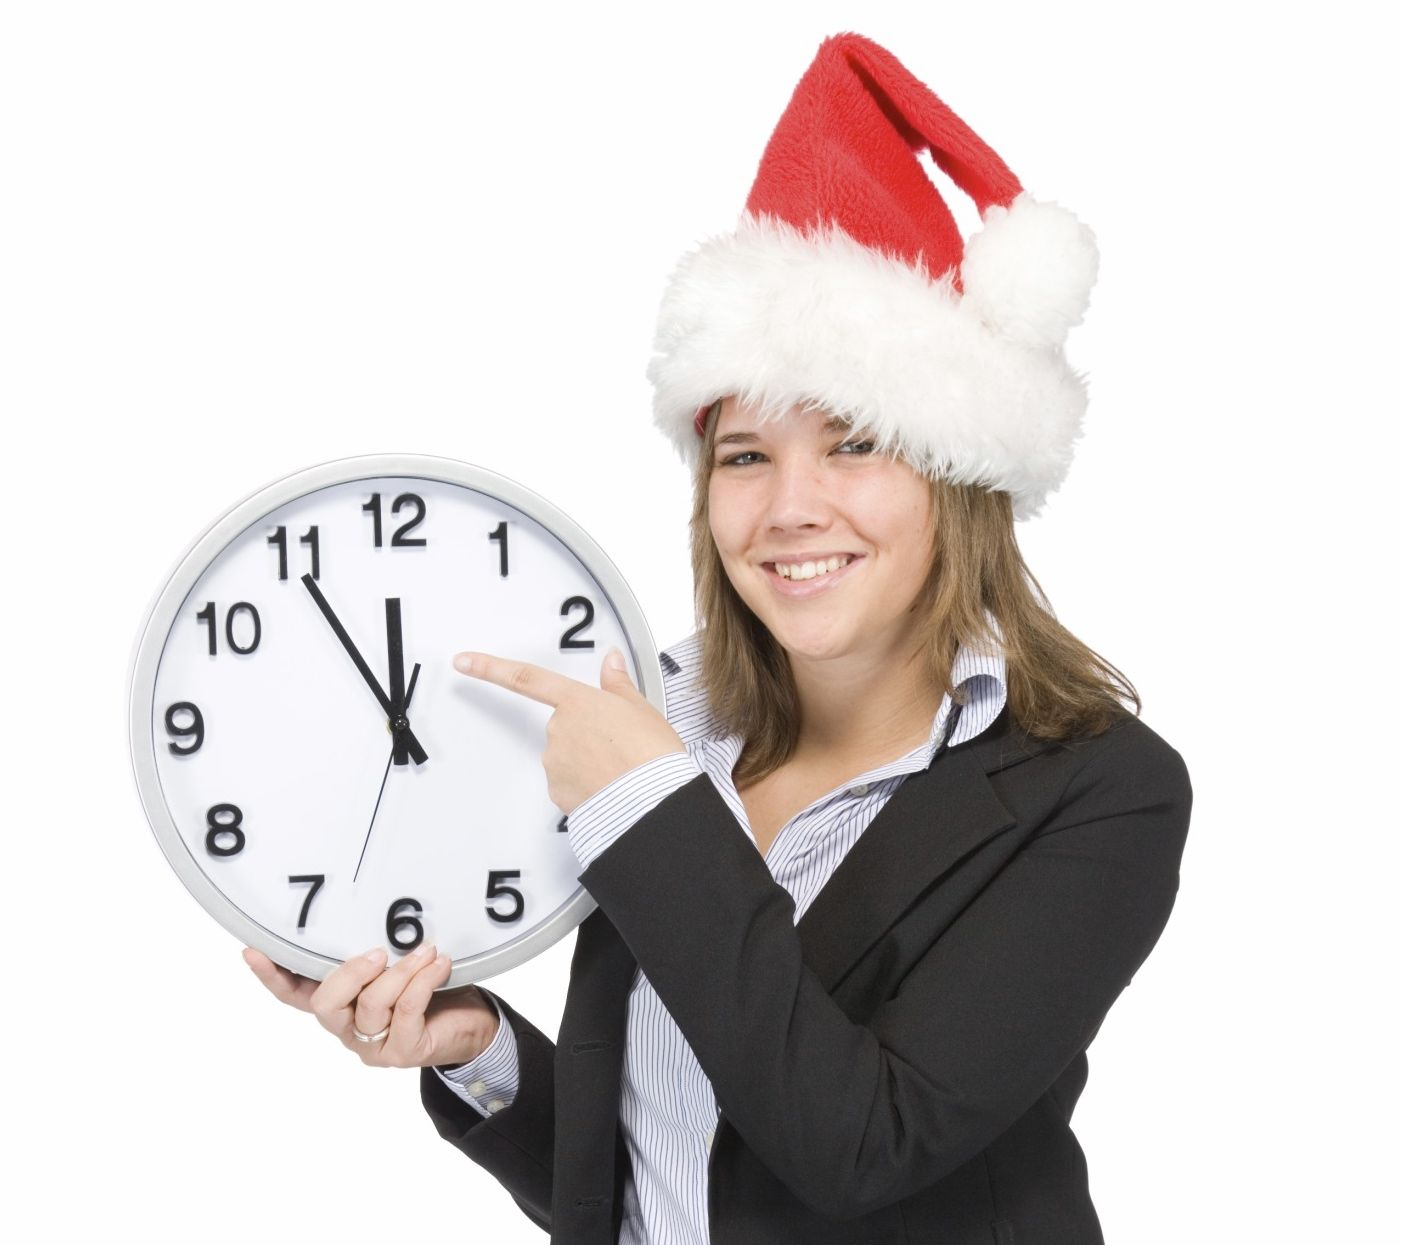 Time Management tips for the Santa's Helpers